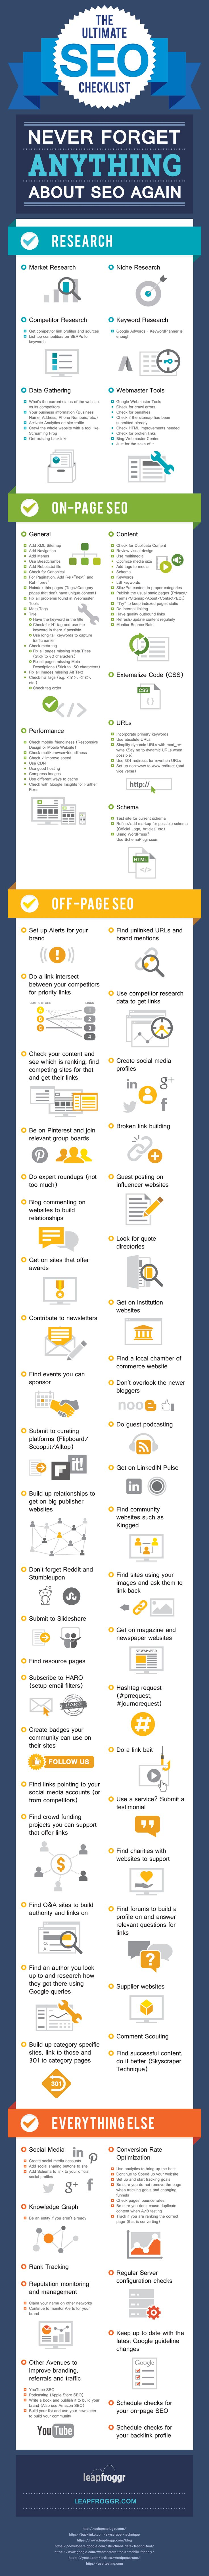 Infografia - On Page Off Page SEO Checklist - BrandonGaille.com